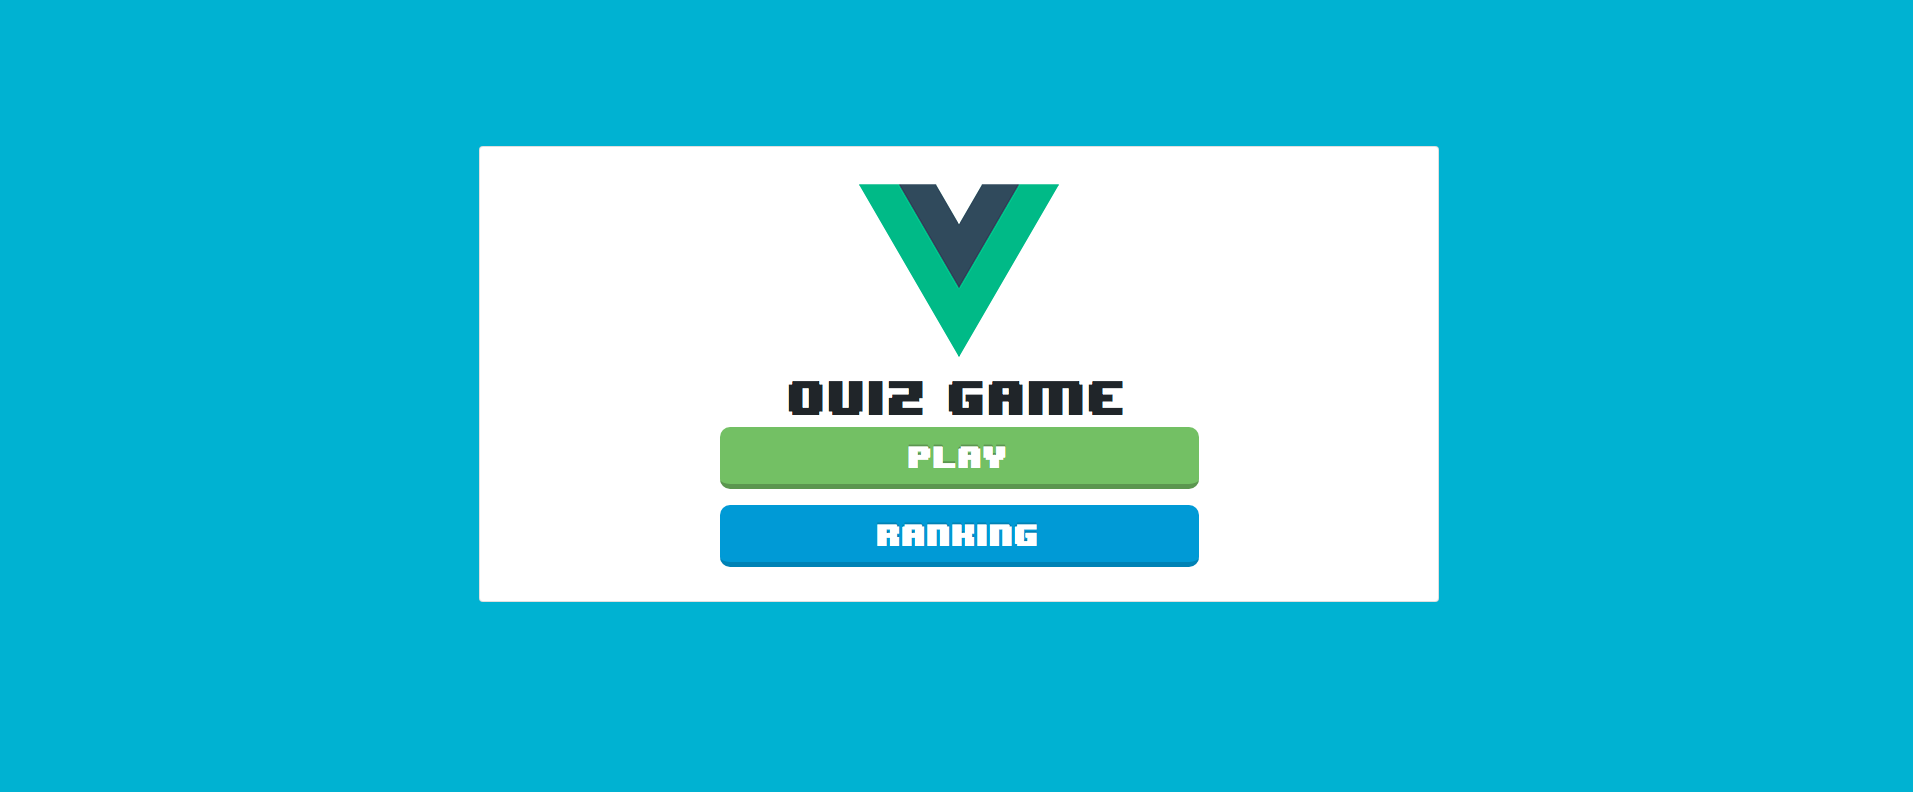 Build a Quiz Game App with Vue, Vuex and Firebase[Part 3]